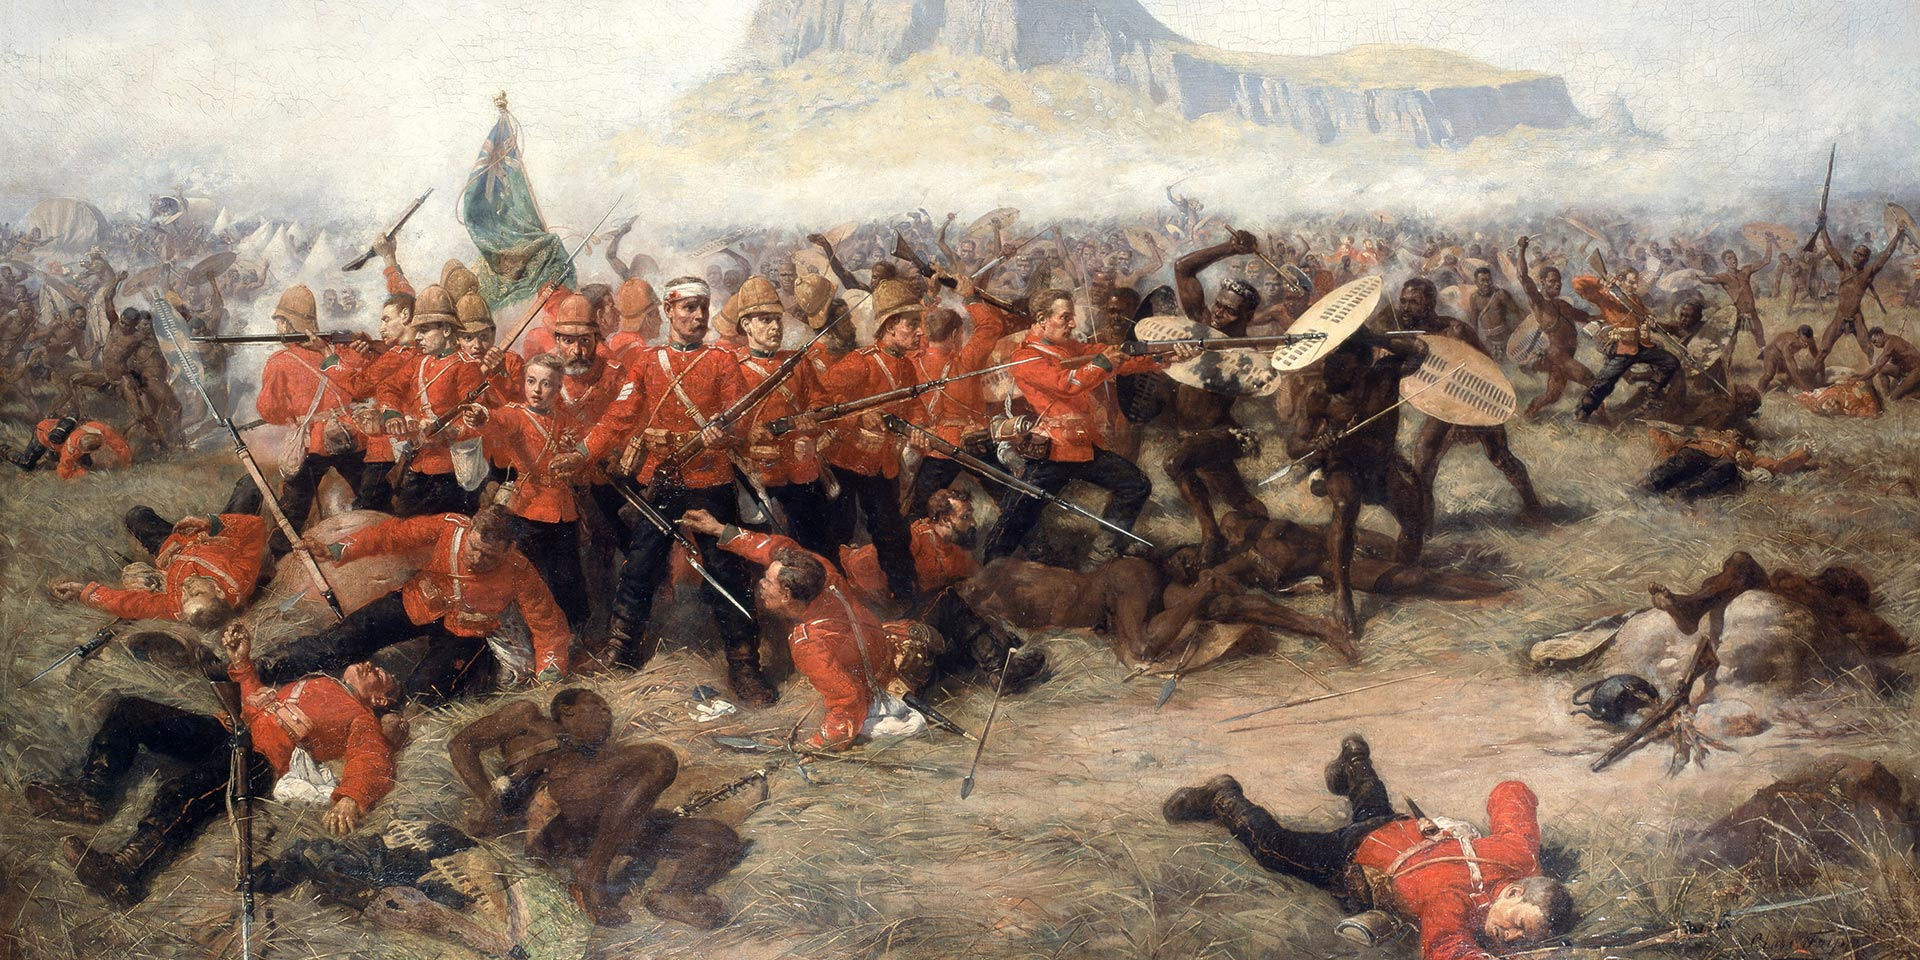 'The Battle of Isandlwana', by Charles Edwin Fripp, c1885